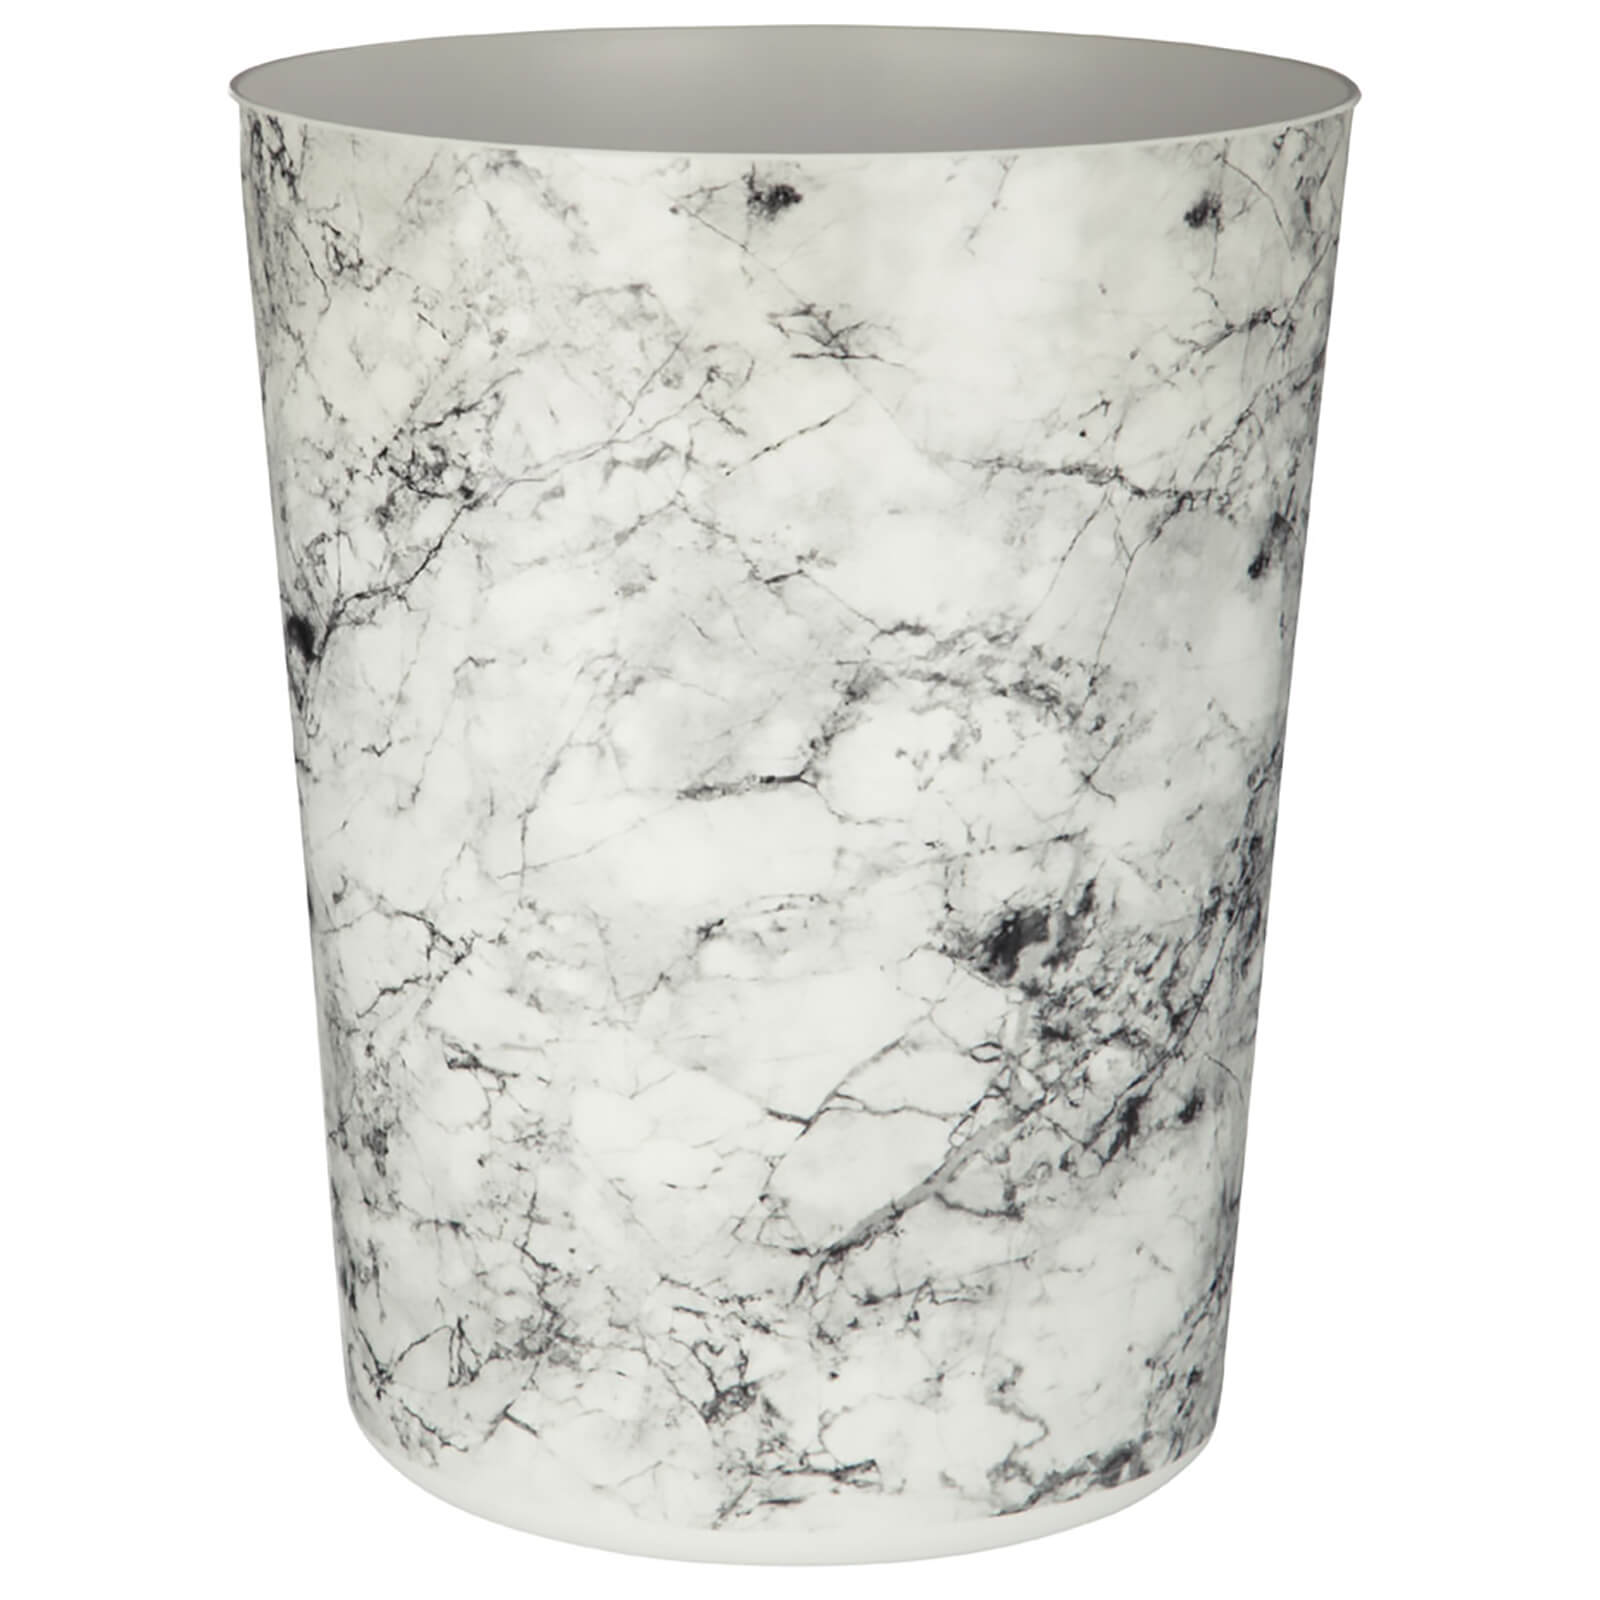 Fifty Five South Rome Waste Bin - Marble Effect